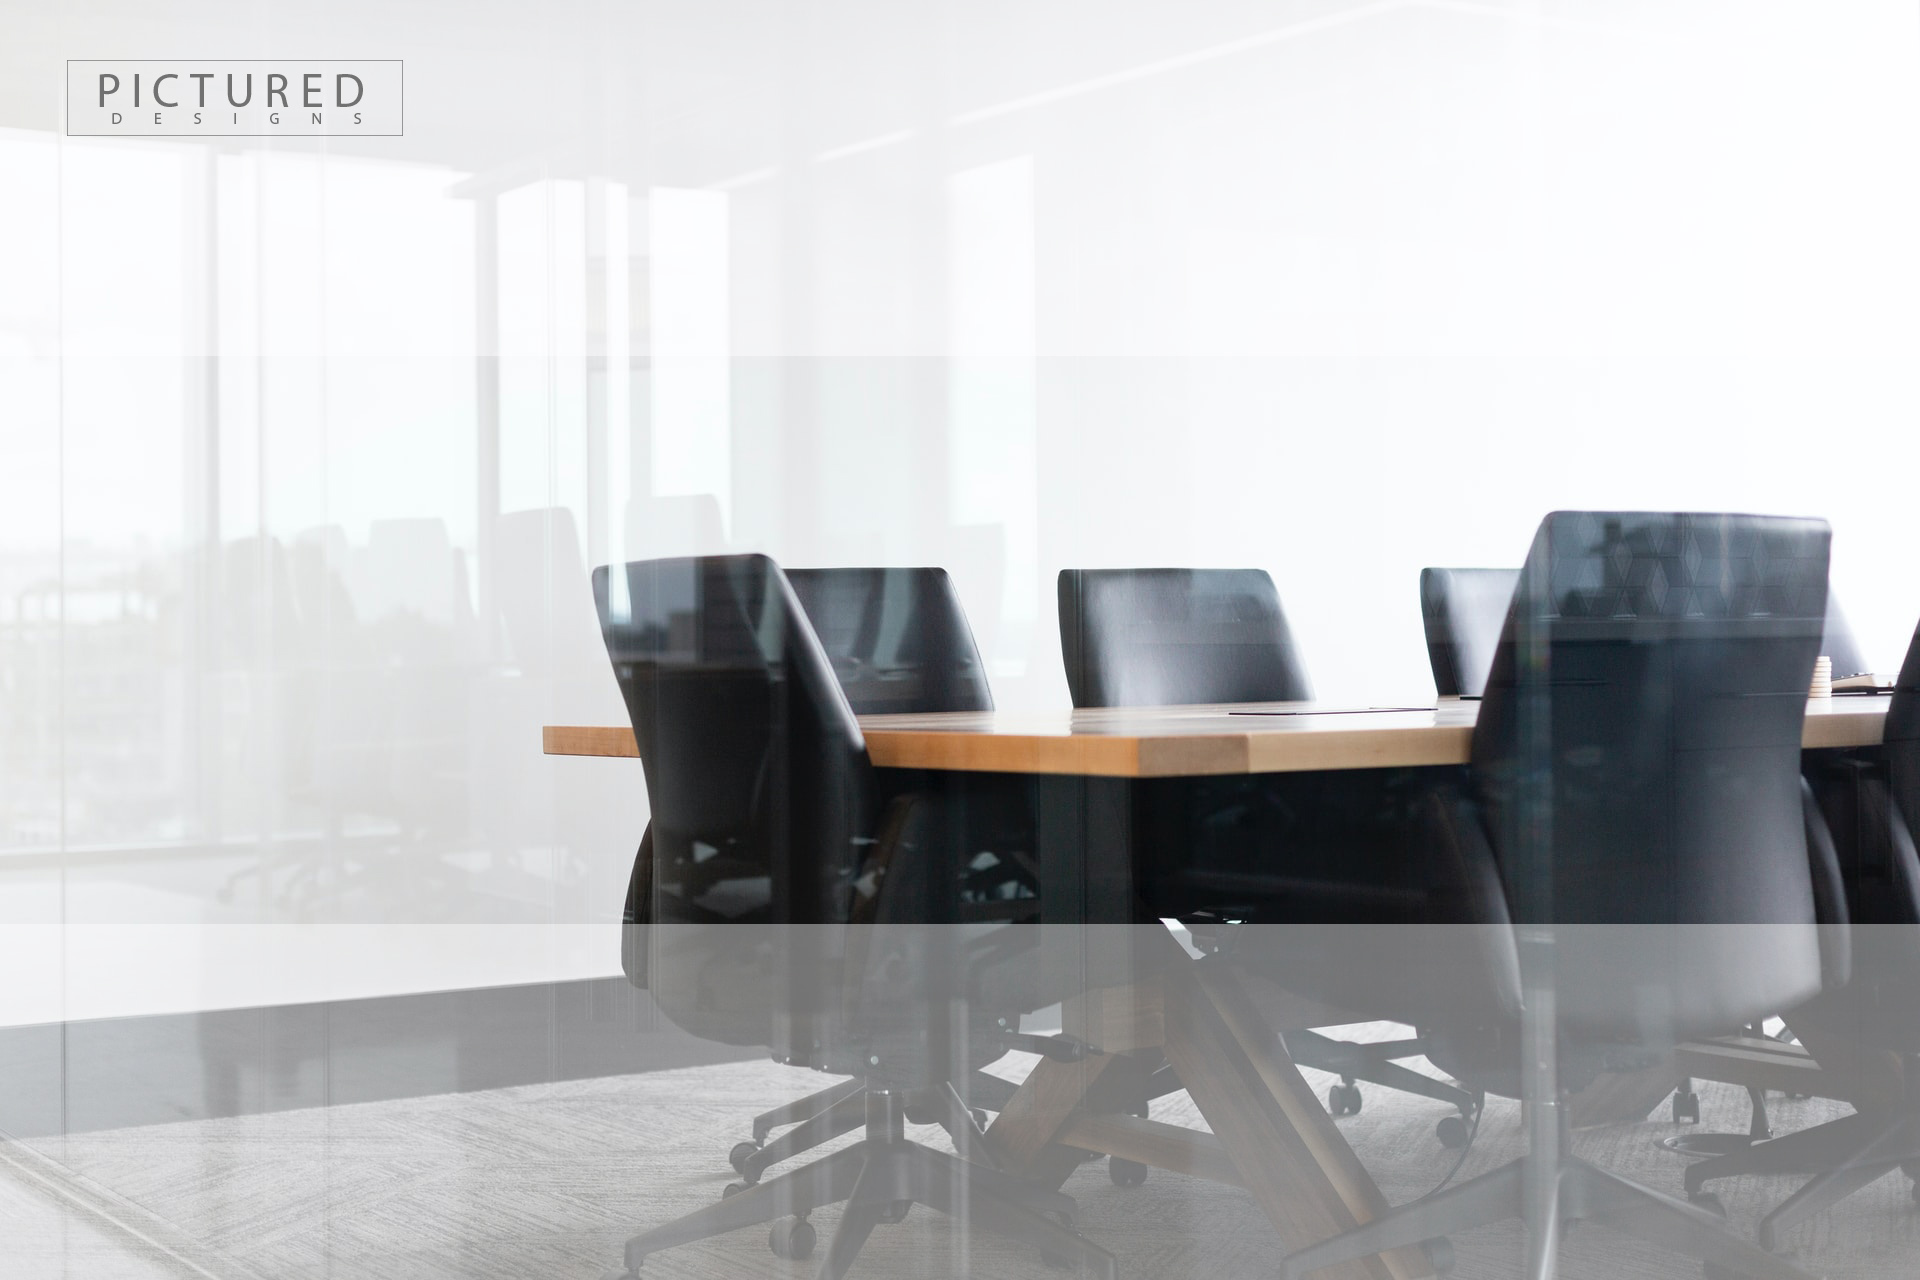 image of pictured designs meeting room